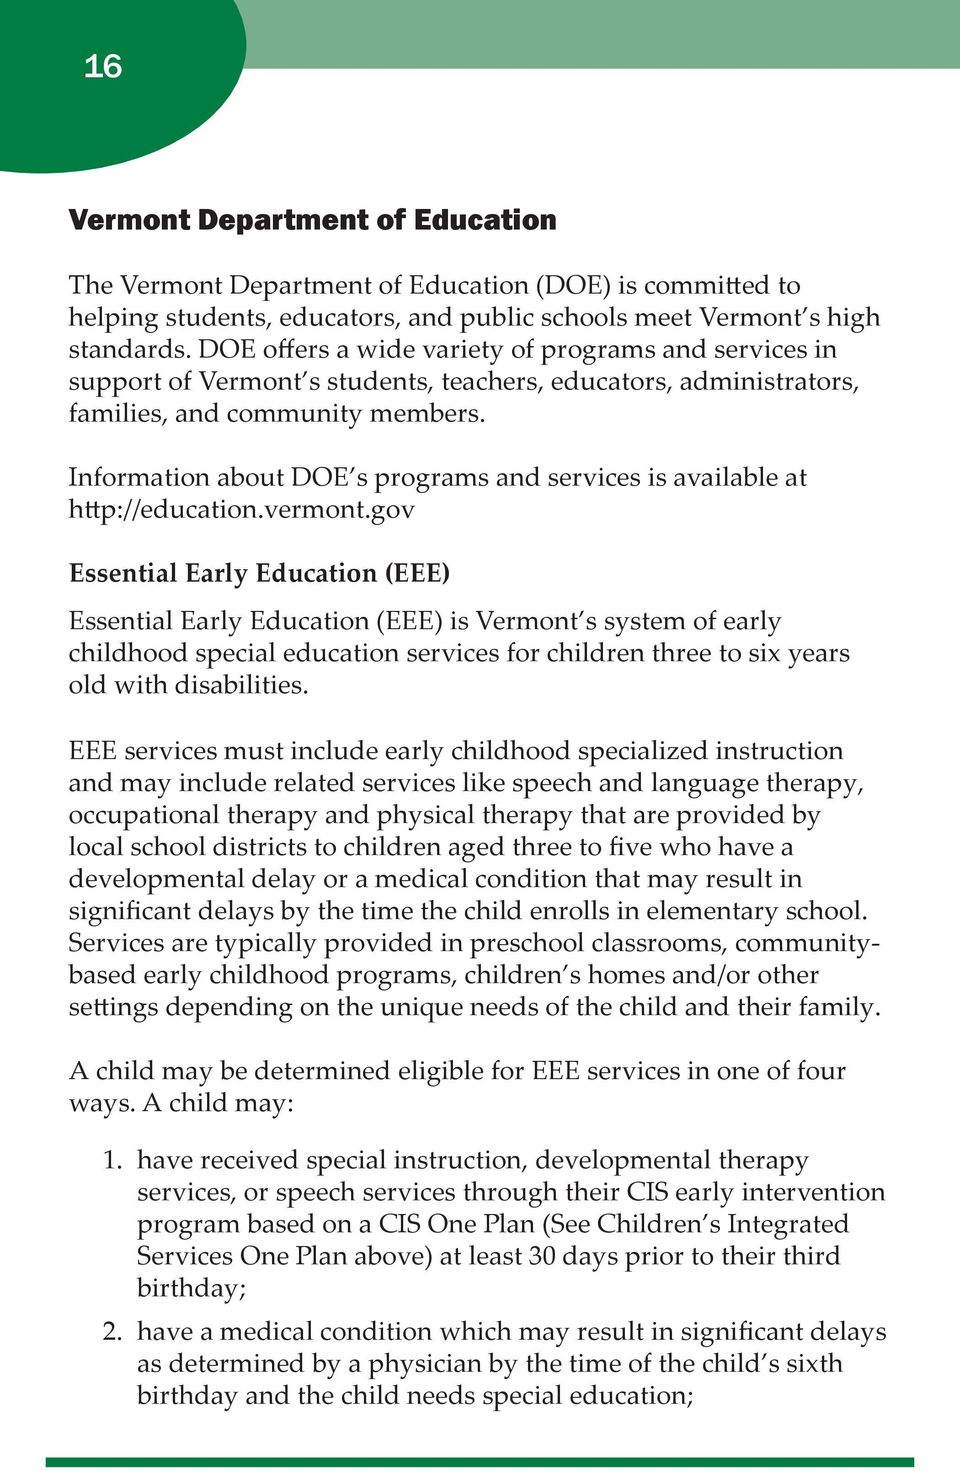 Information about DOE s programs and services is available at http://education.vermont.